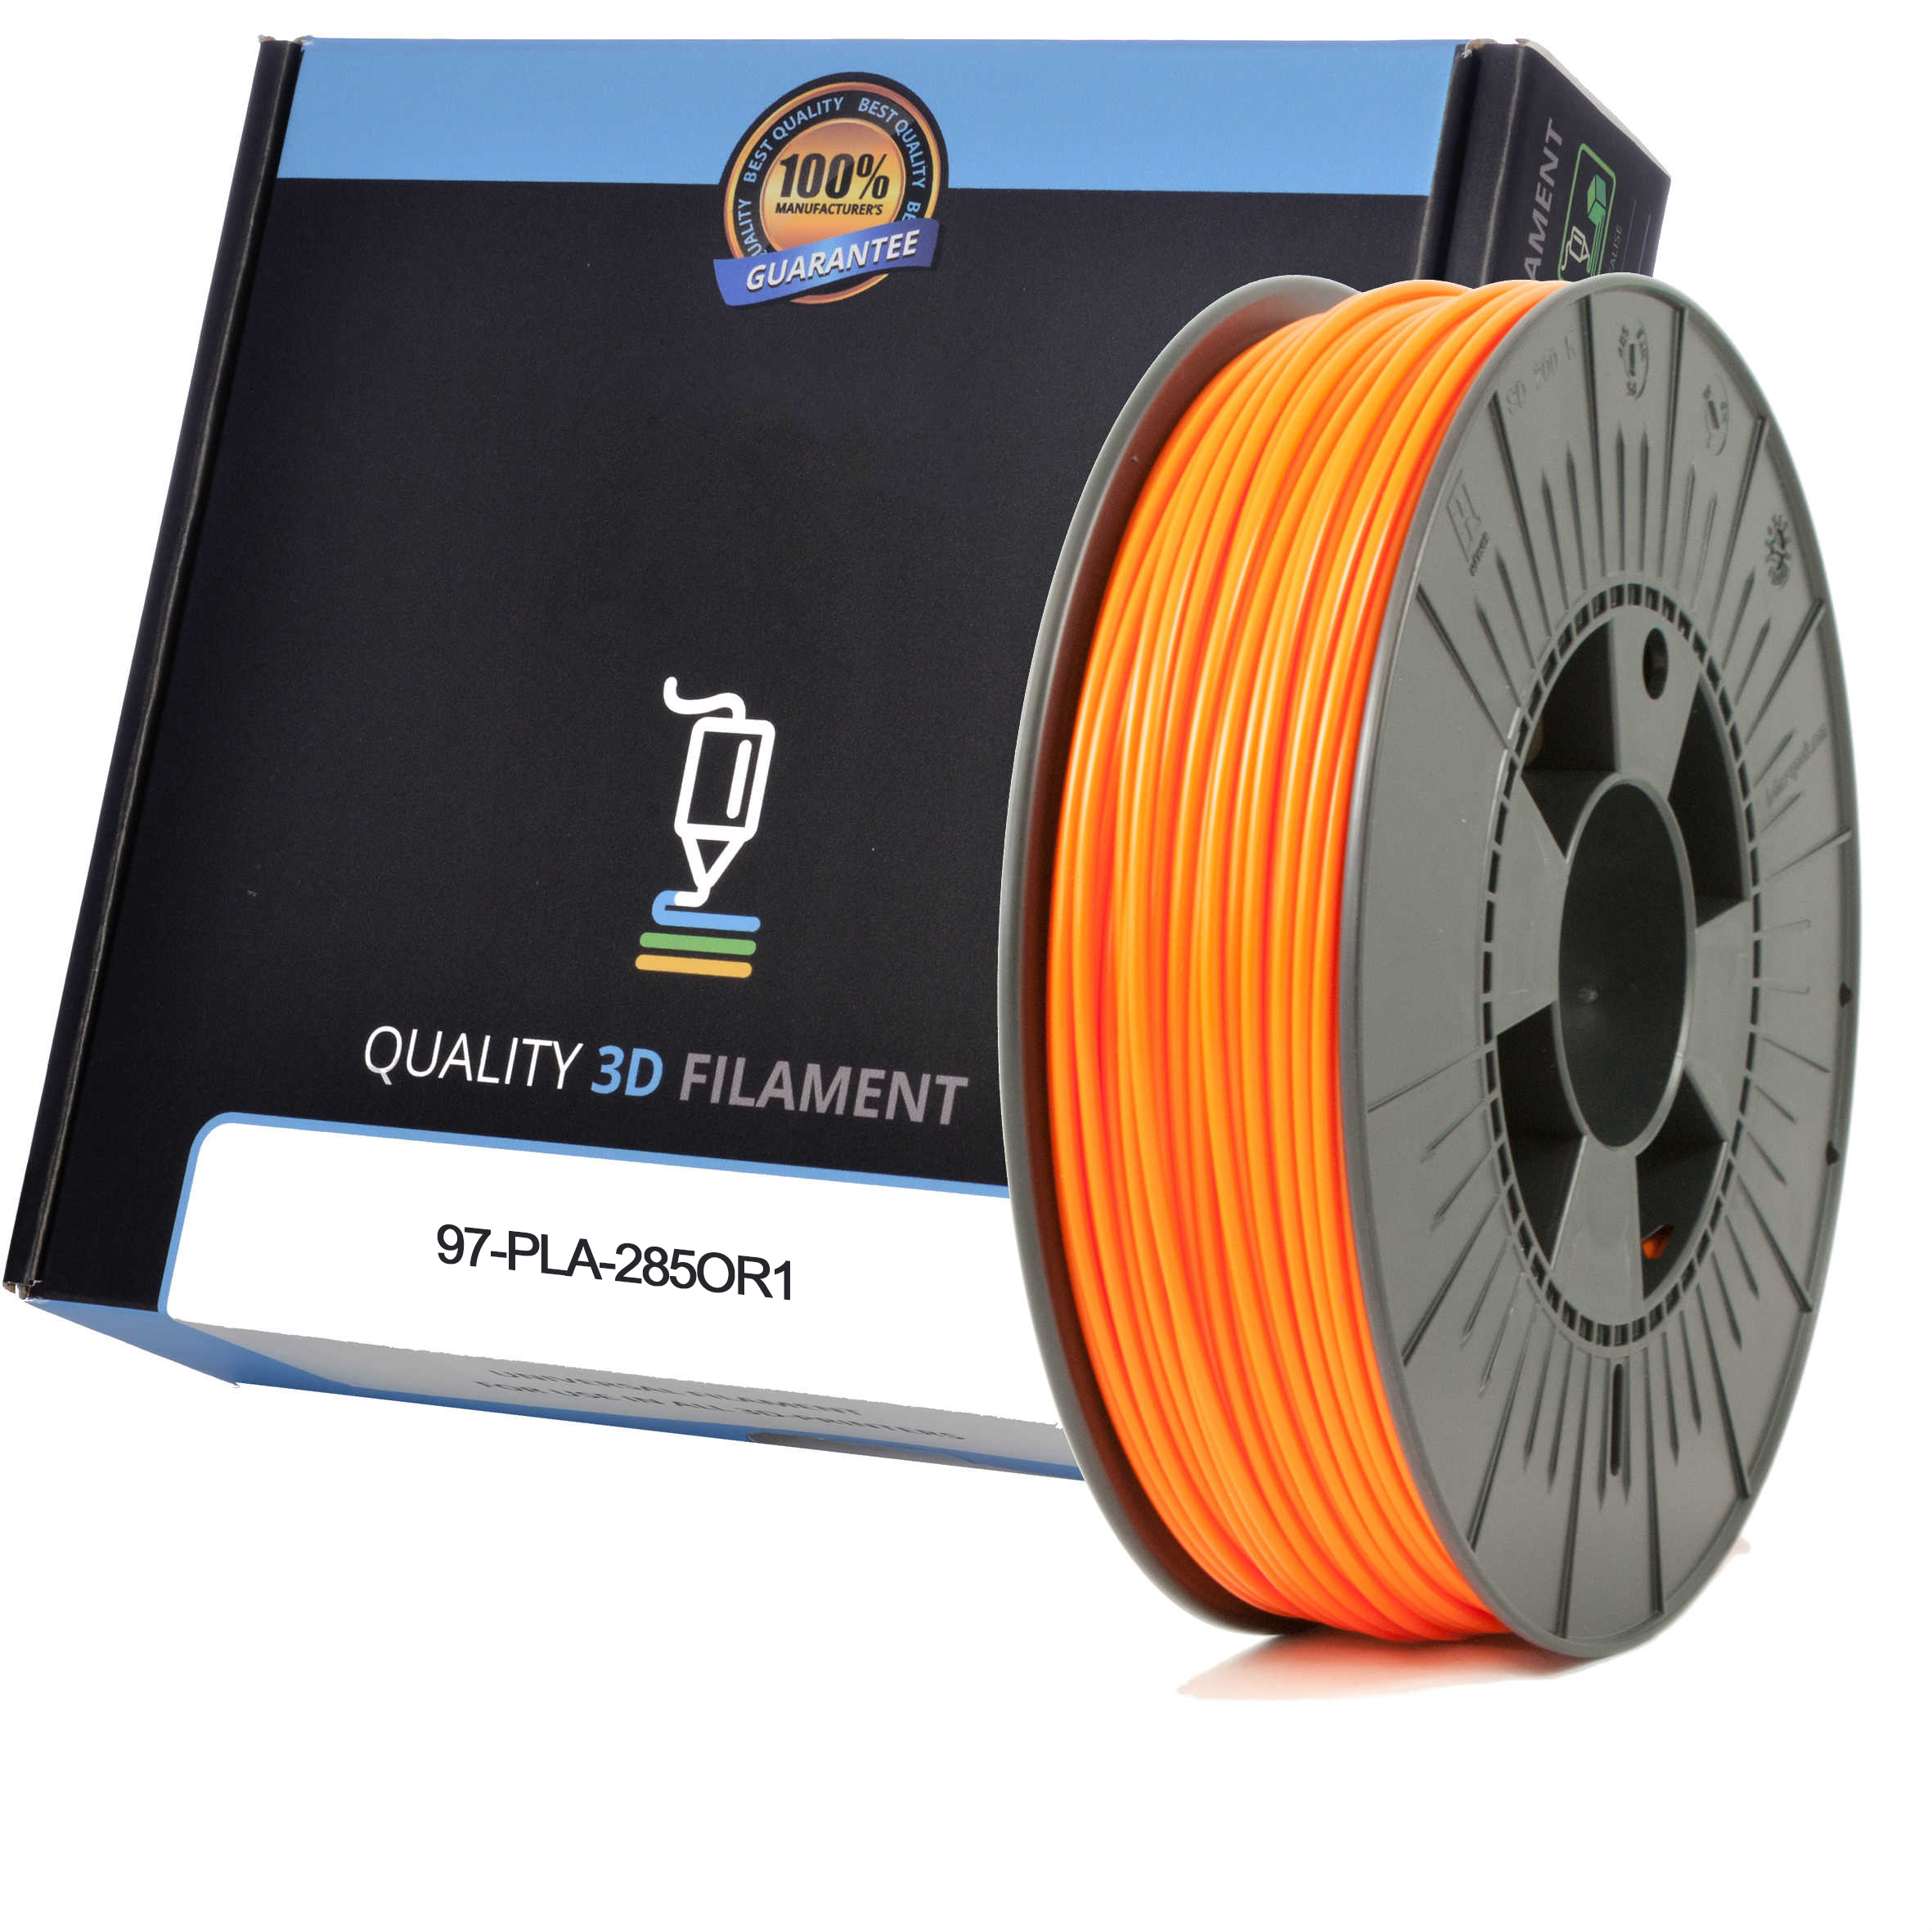 Premium Compatible PLA 2.85mm Orange 1kg 3D Filament (97-PLA-285OR1)